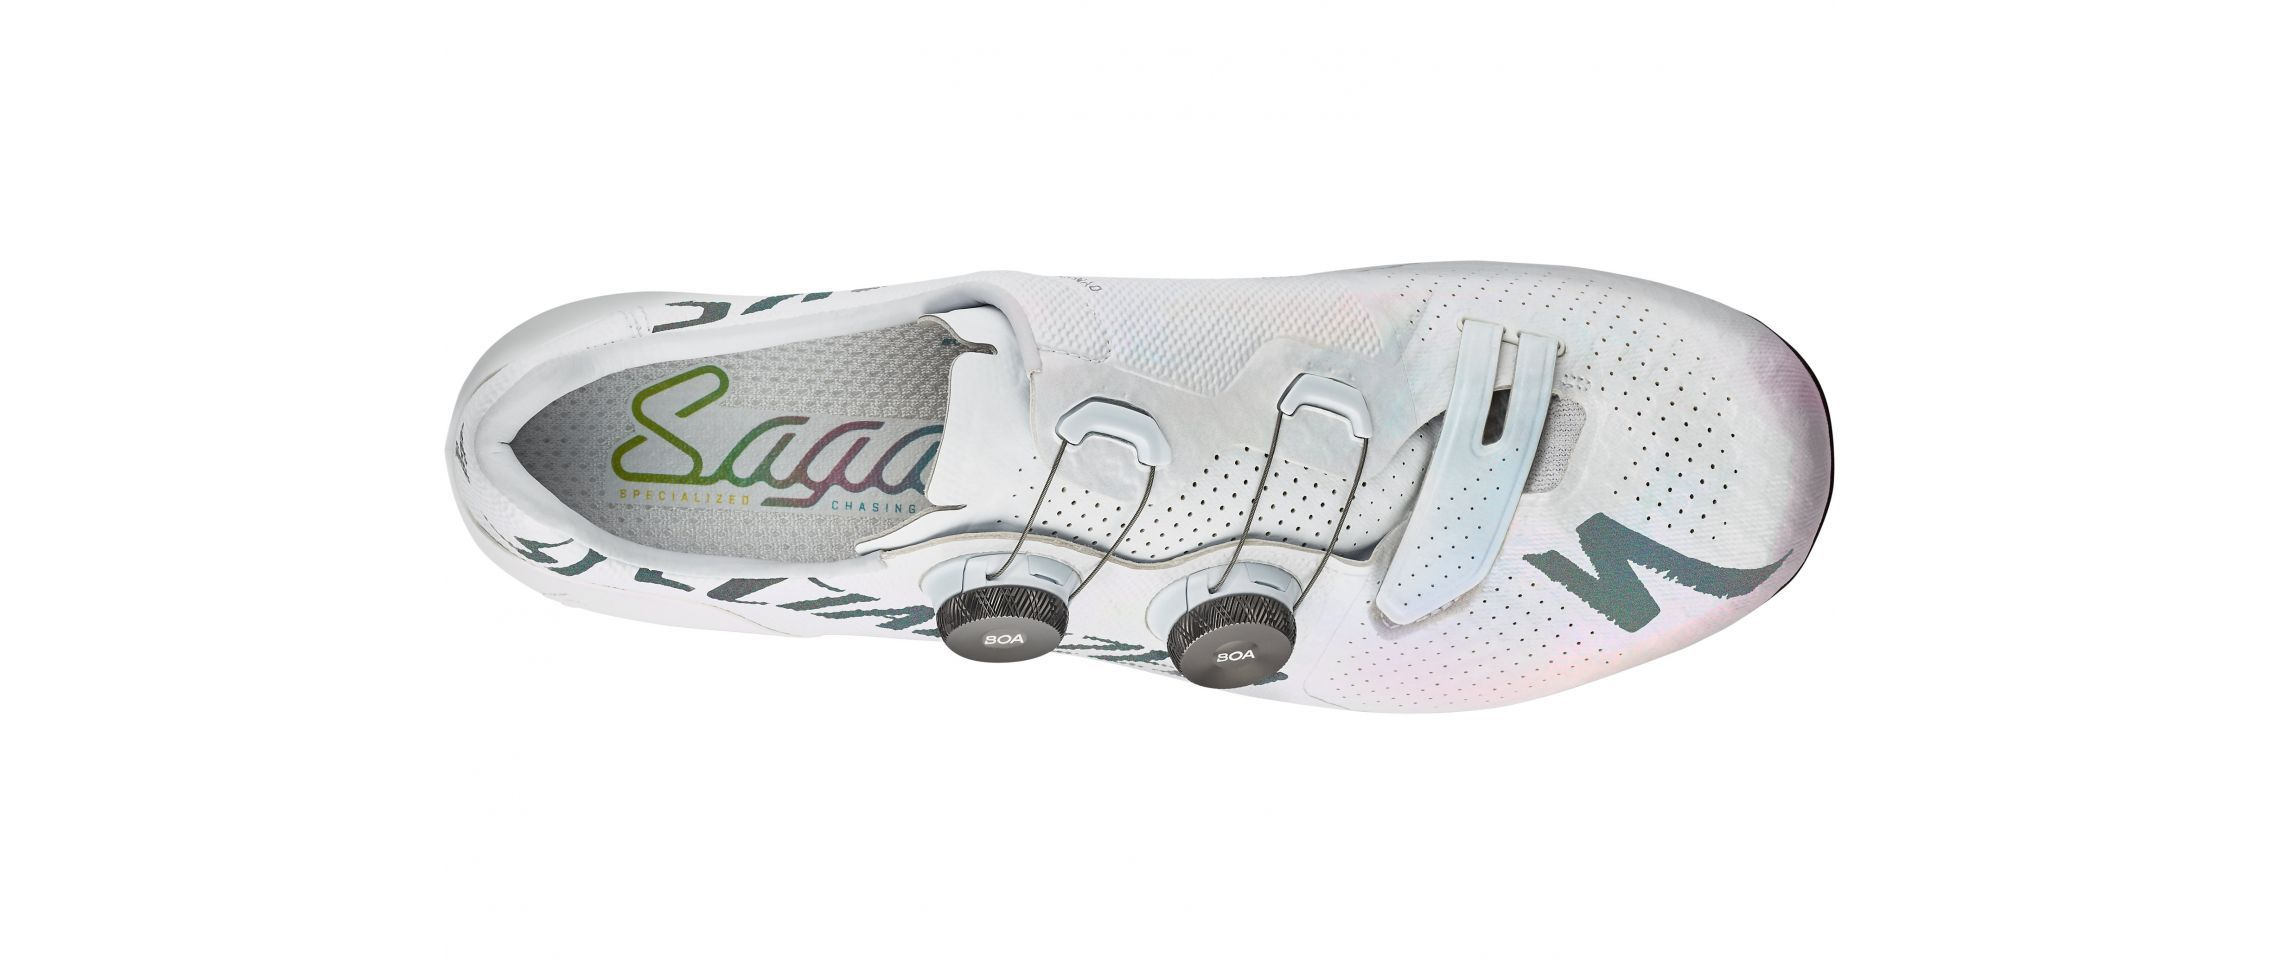 S-Works 7 Sagan Collection Zapatillas Carretera Specialized Overexposed 4 IBKBike.es